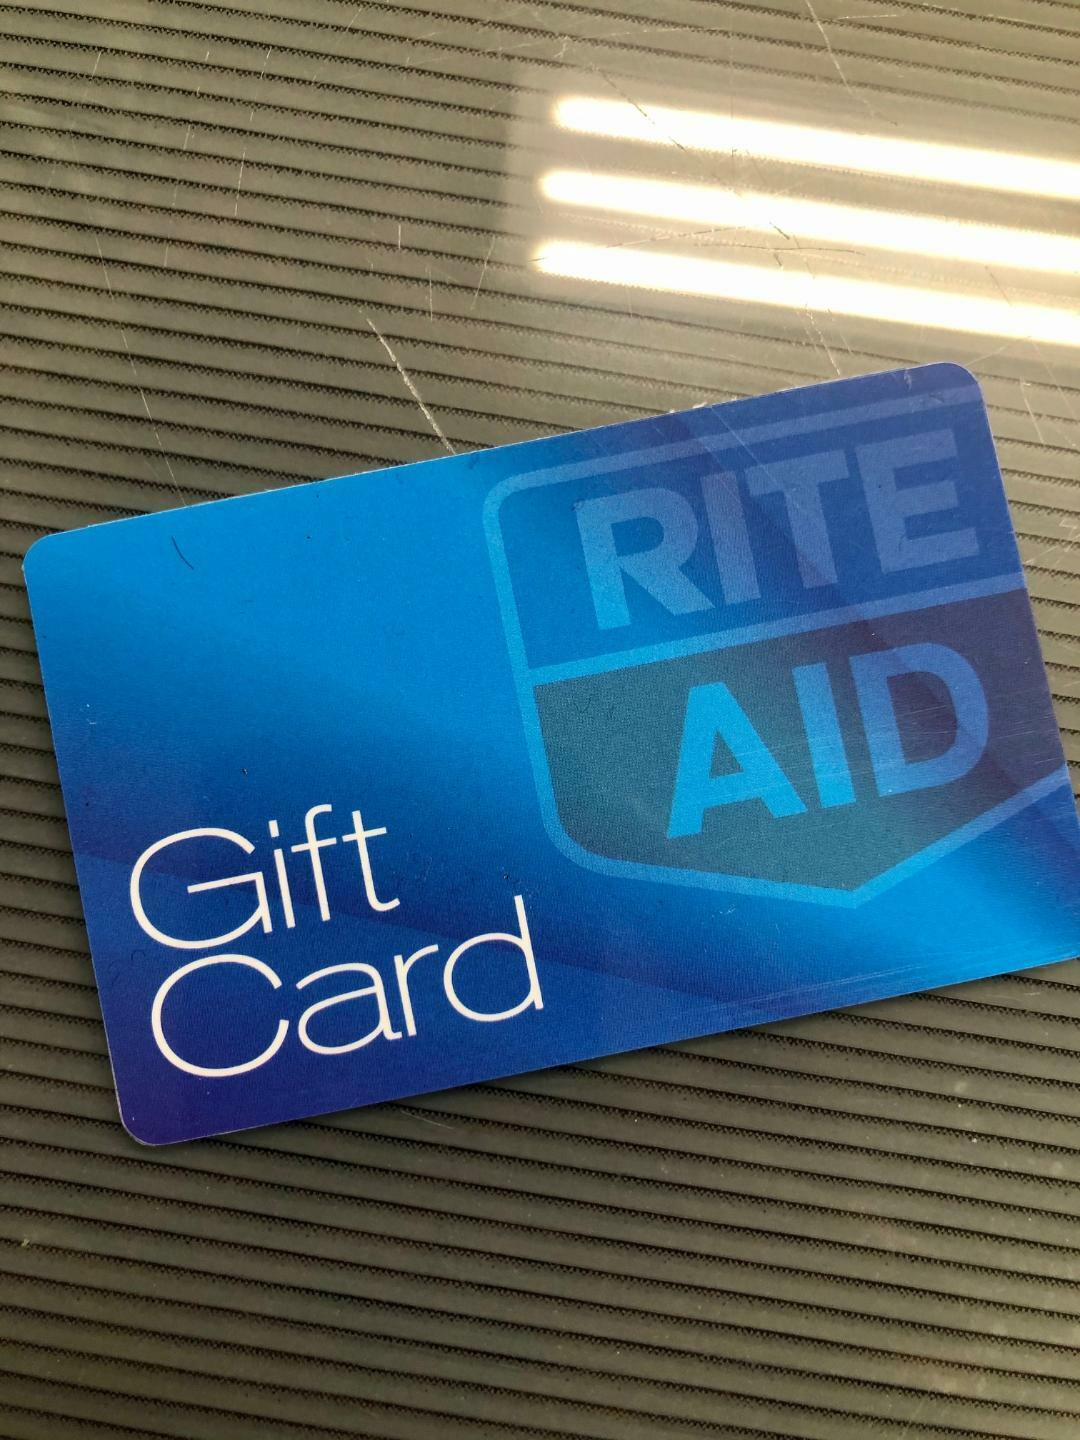 RITE AID MERCHANDISE RETURN CARD WITH TOTAL BALANCE OF 88.46 - $70.00